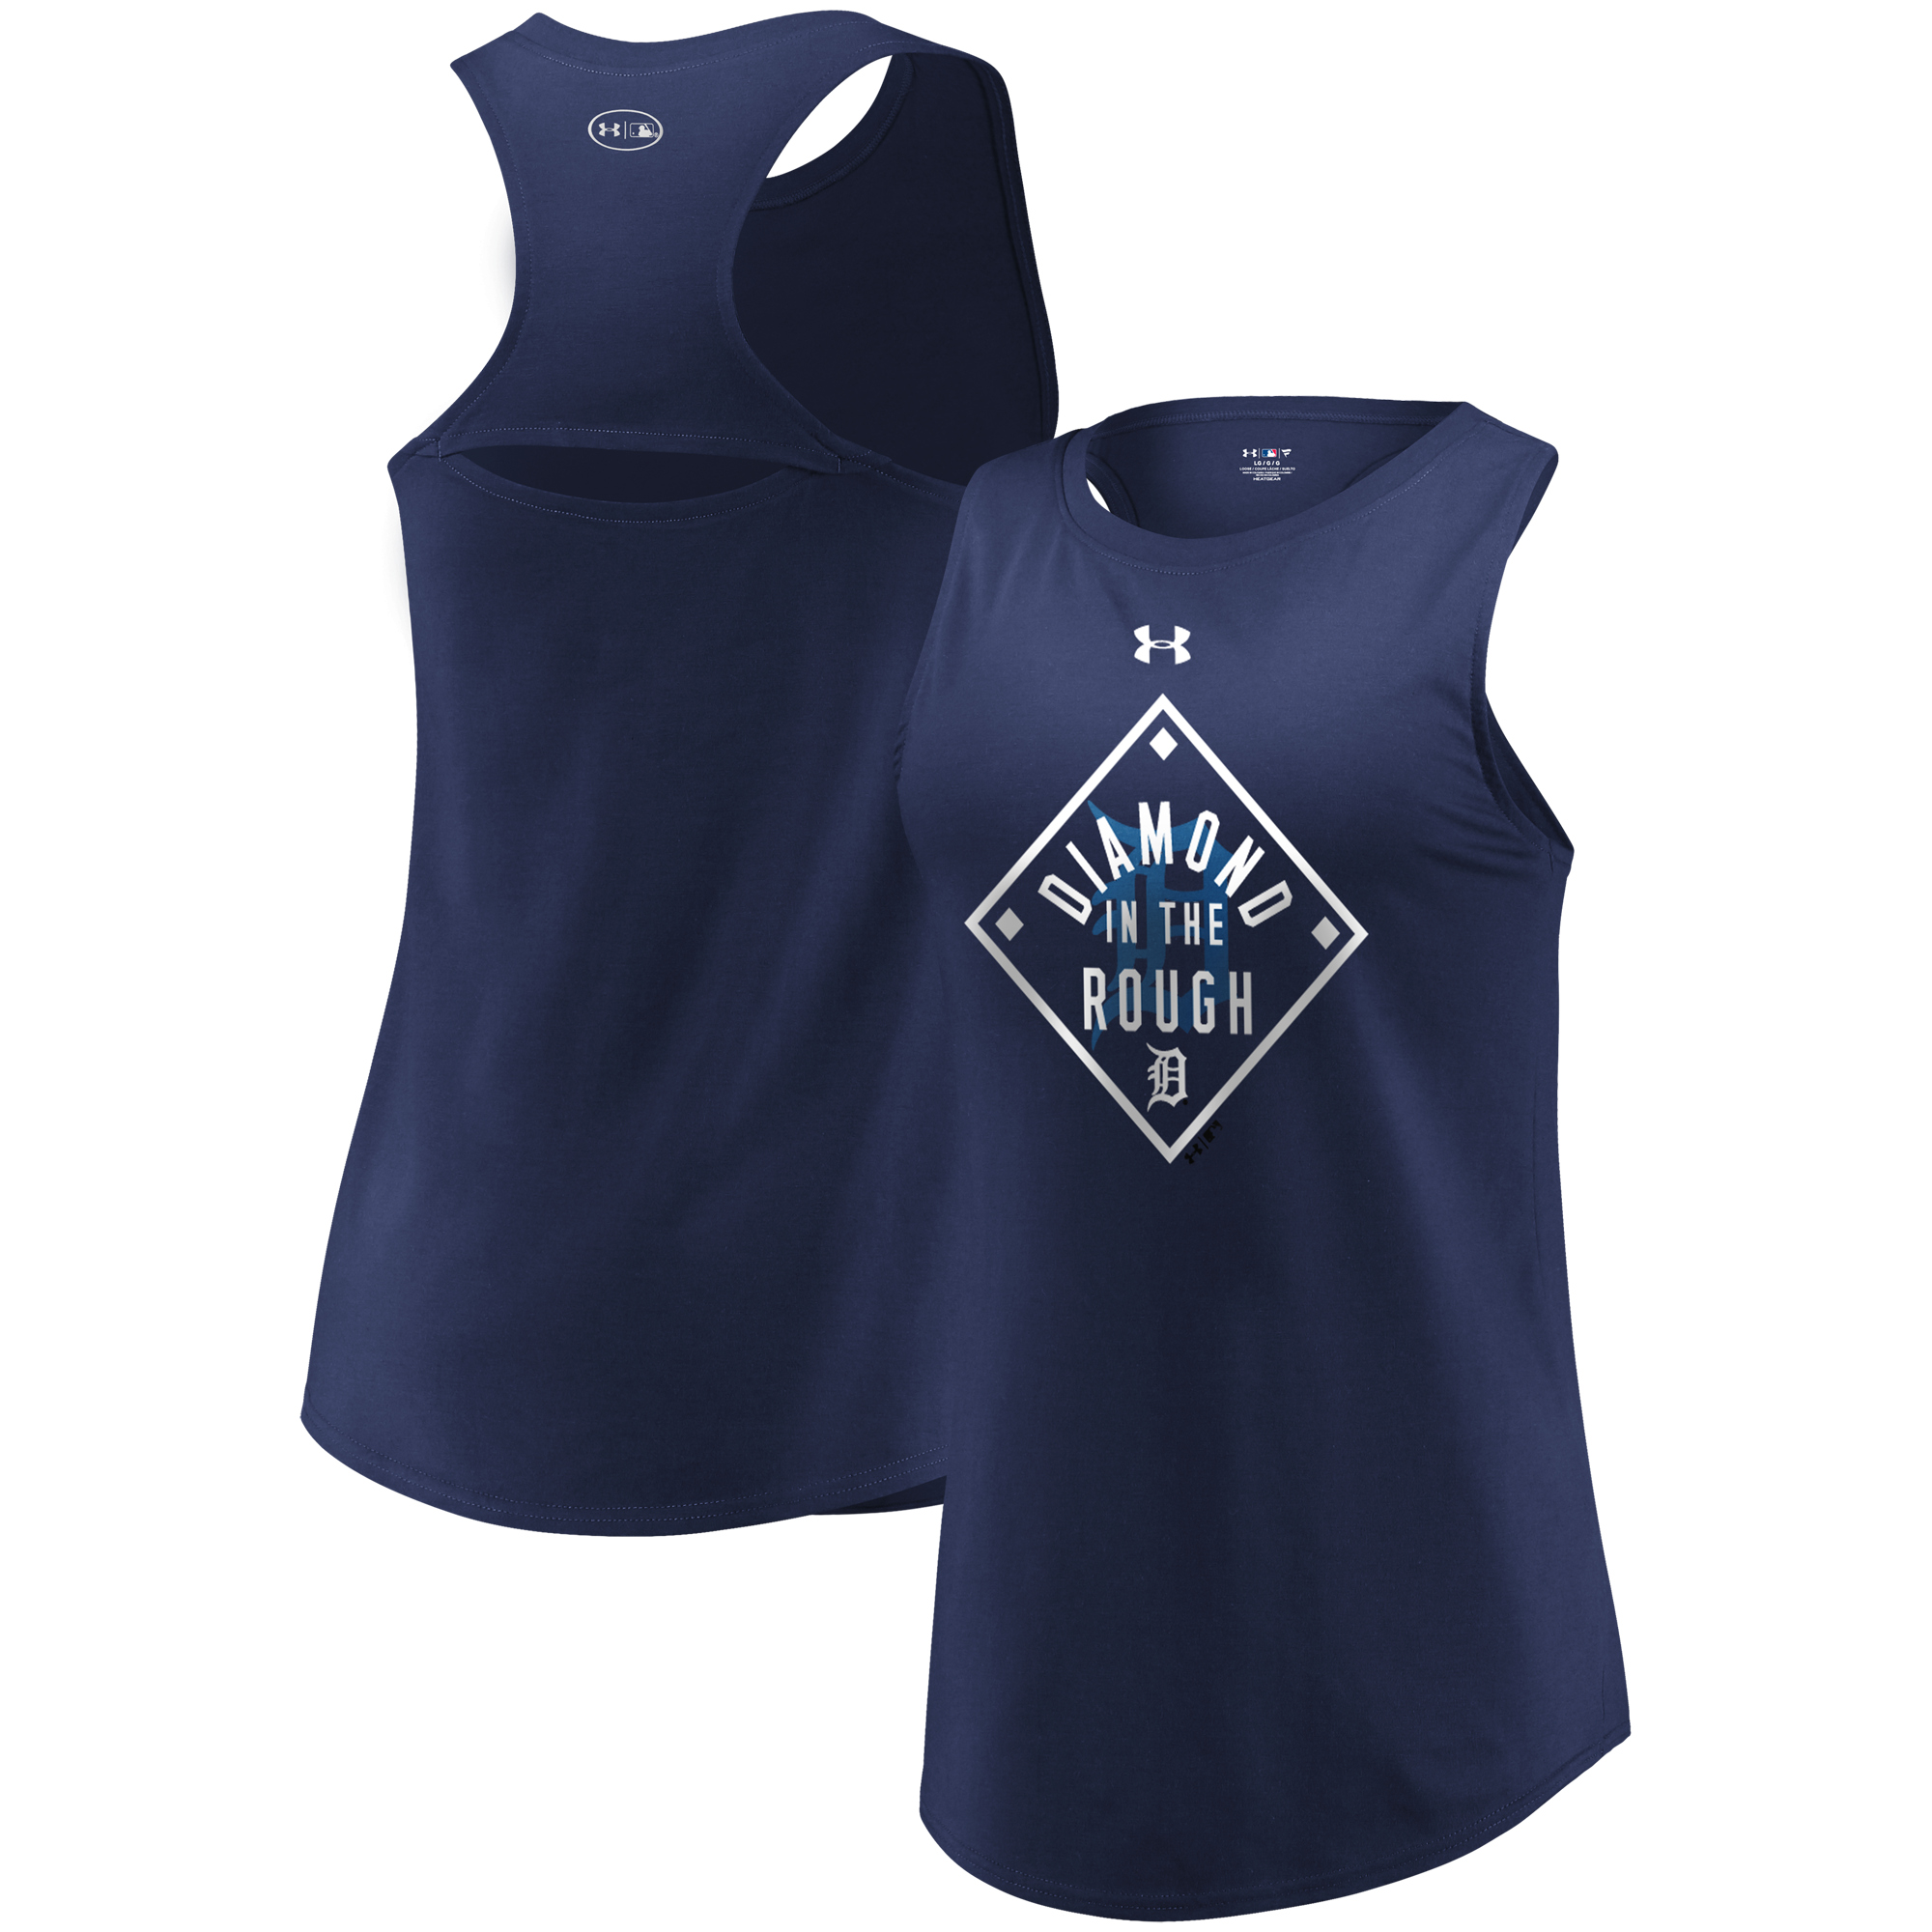 Detroit Tigers Under Armour Women's Passion Diamond Tri-Blend Performance Tank Top Navy by MAJESTIC LSG